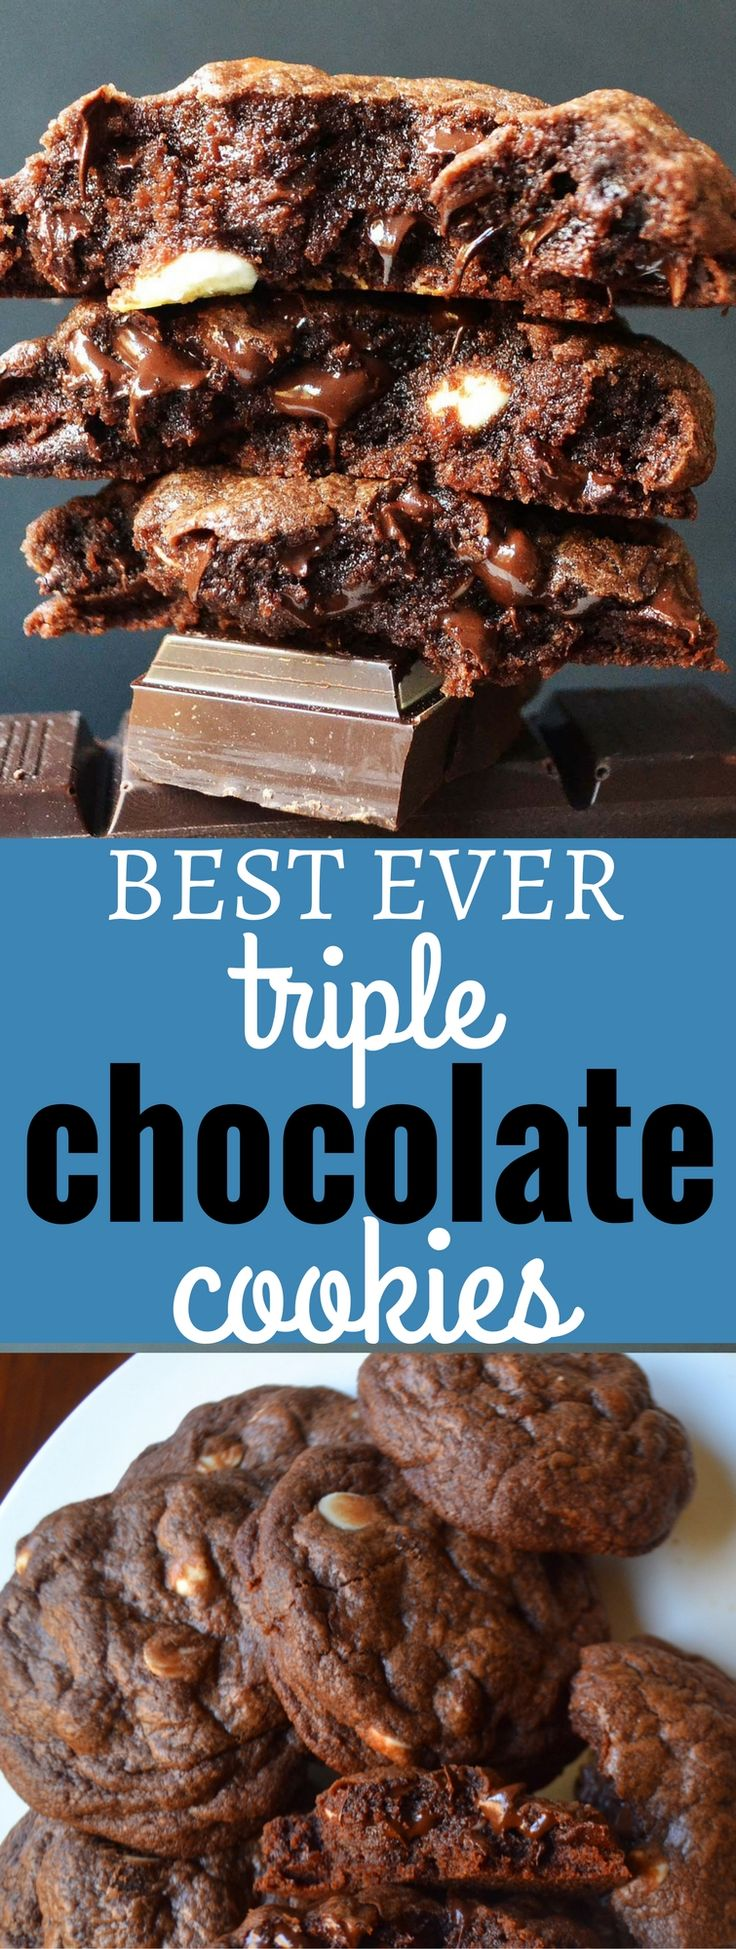 BEST EVER Triple Chocolate Cookies. A Chocoholic's dream cookie. Soft rich chocolate cookie studded with white chocolate chunks and semi-sweet chocolate chips. www.modernhoney.com